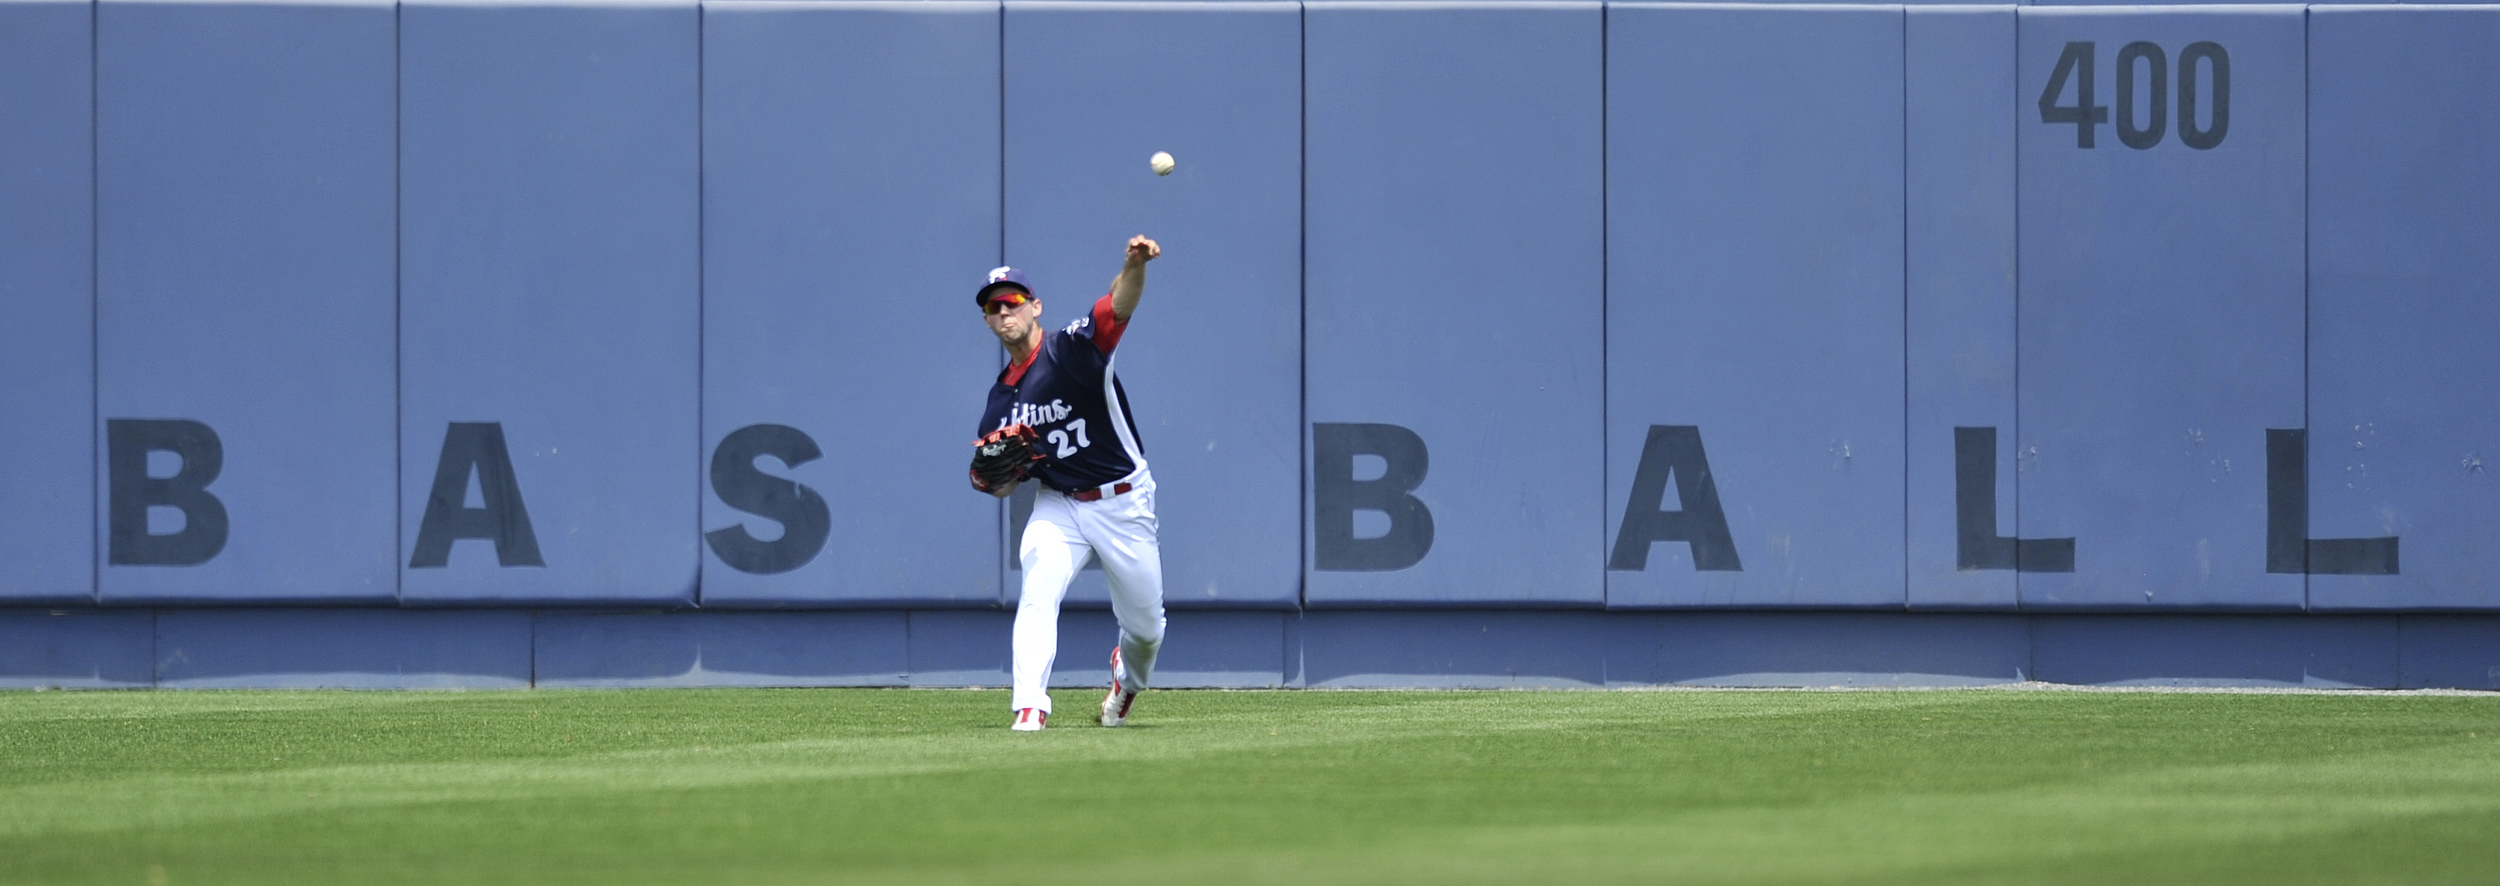 Aaron Brown throws the ball from the outfield during the Fightin' Phils baseball game against the Akron Rubberducks at FirstEnergy Stadium in Reading, PA, on June 23, 2016. (Reading Eagle: Sarah Stier)